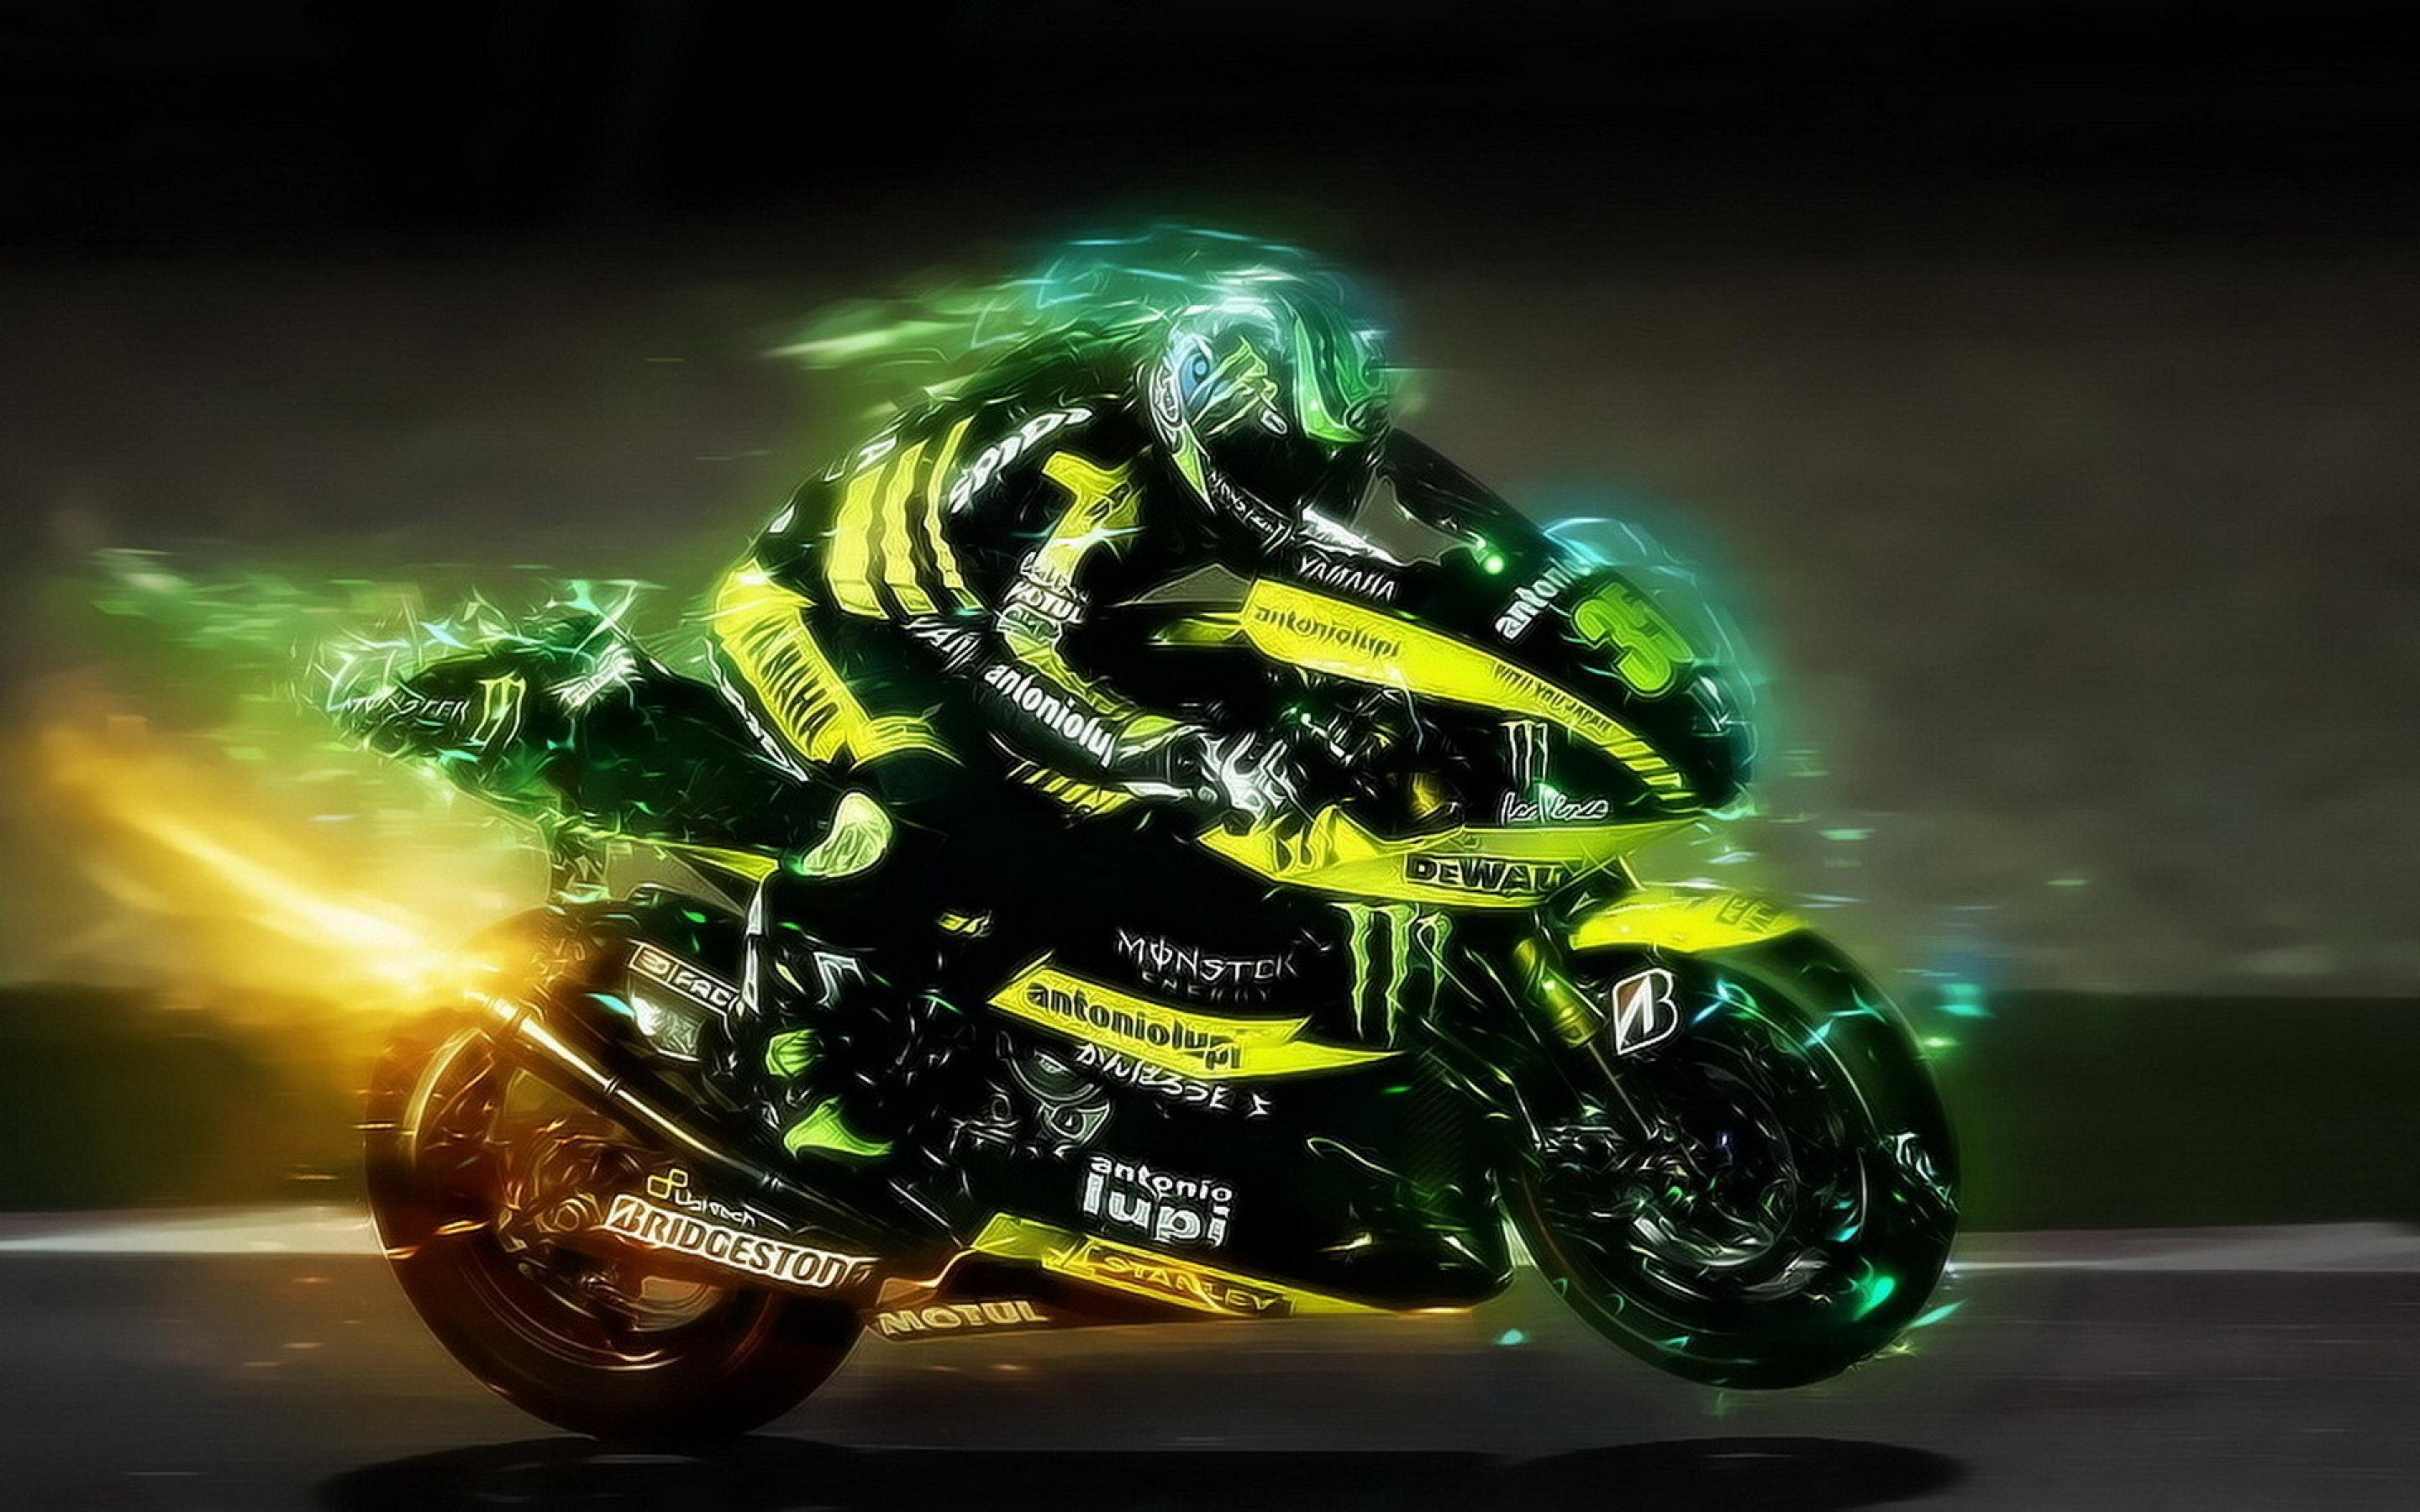 Motorcycle Wallpapers HD 2880x1800